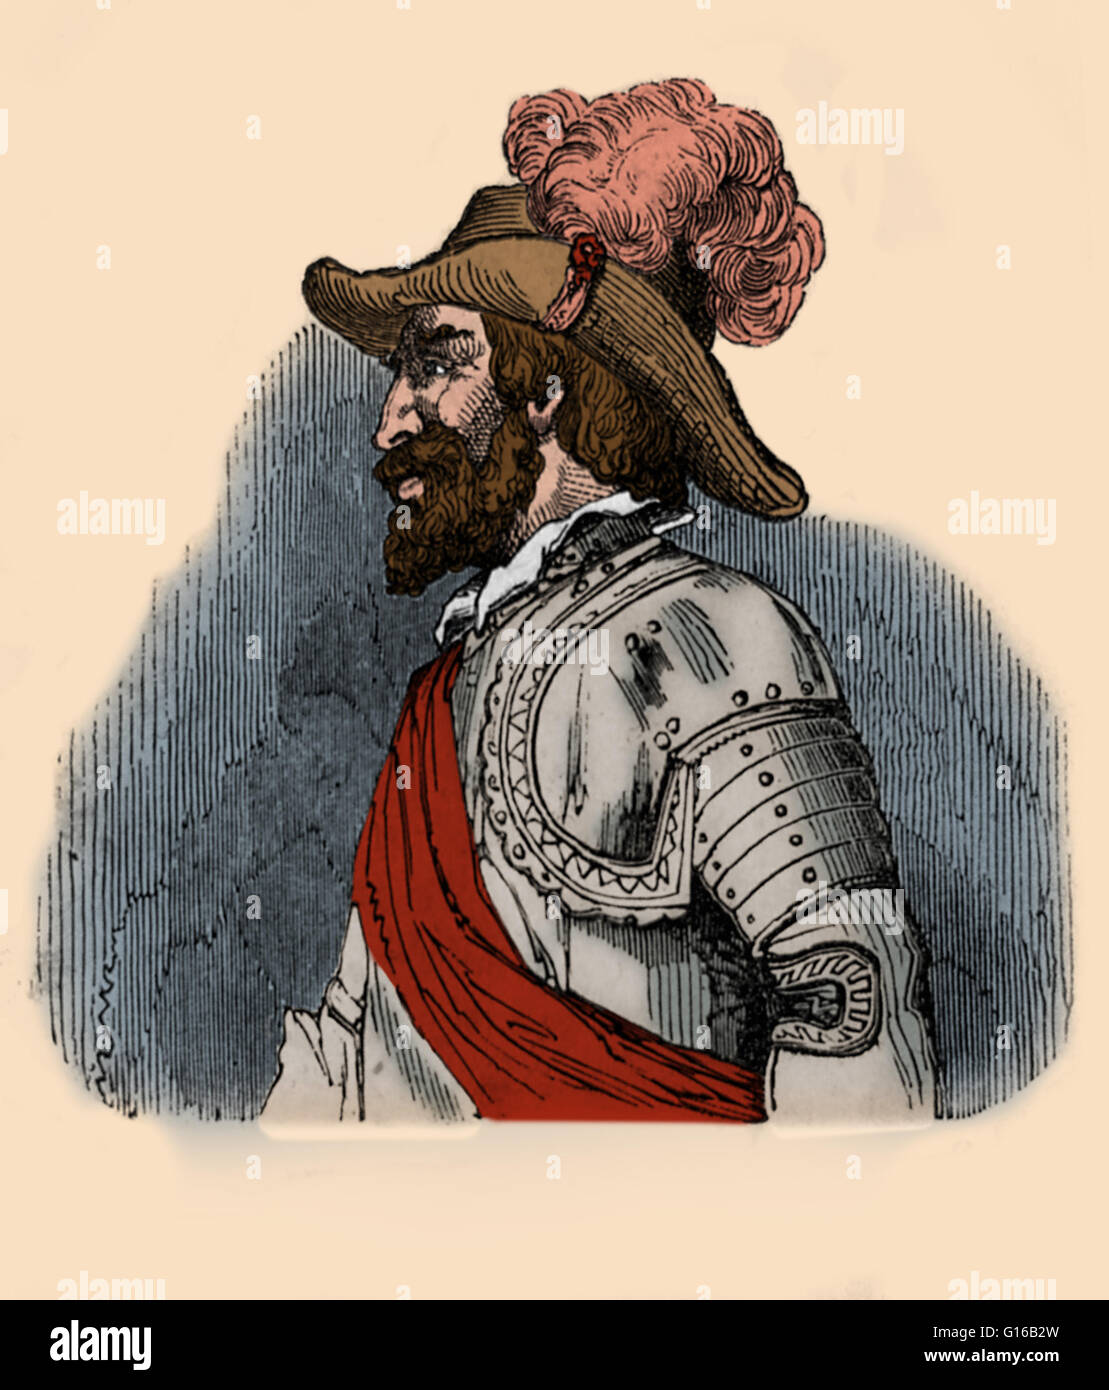 singles in ponce de leon Biography: early life juan ponce de leon was born in the spanish kingdom of castile around the year 1474 while still a young boy, juan went to work as a squire for a.